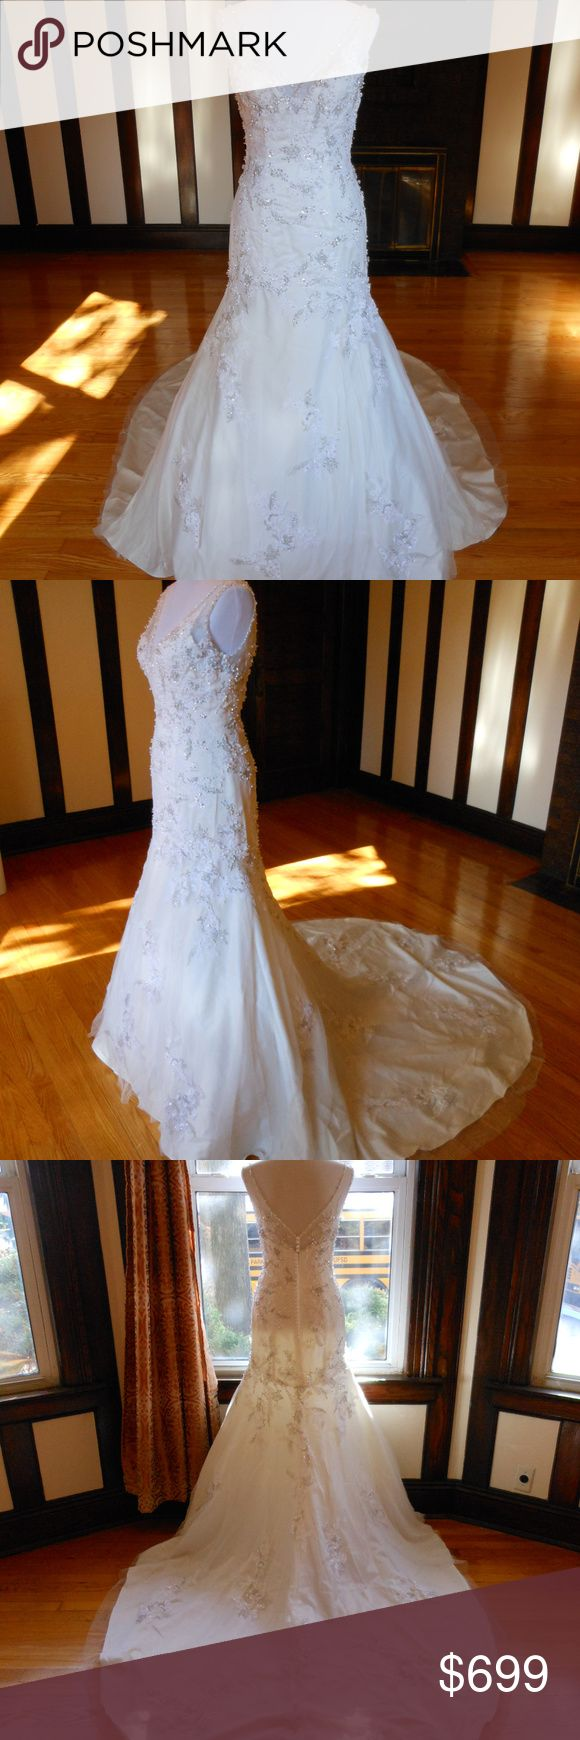 """Justin Alexander Wedding Dress This is an Authentic JUSTIN ALEXANDER Bridal Wedding Dress Gown. It has a gorgeous trumpet style with a fabulous long train. This dress is brand new in great condition with the original label. It was never worn.  Size: 6 Bust: 34"""" Waist: 28"""" Hips: 37""""  Color: Ivory/Silver Justin Alexander Dresses Wedding"""